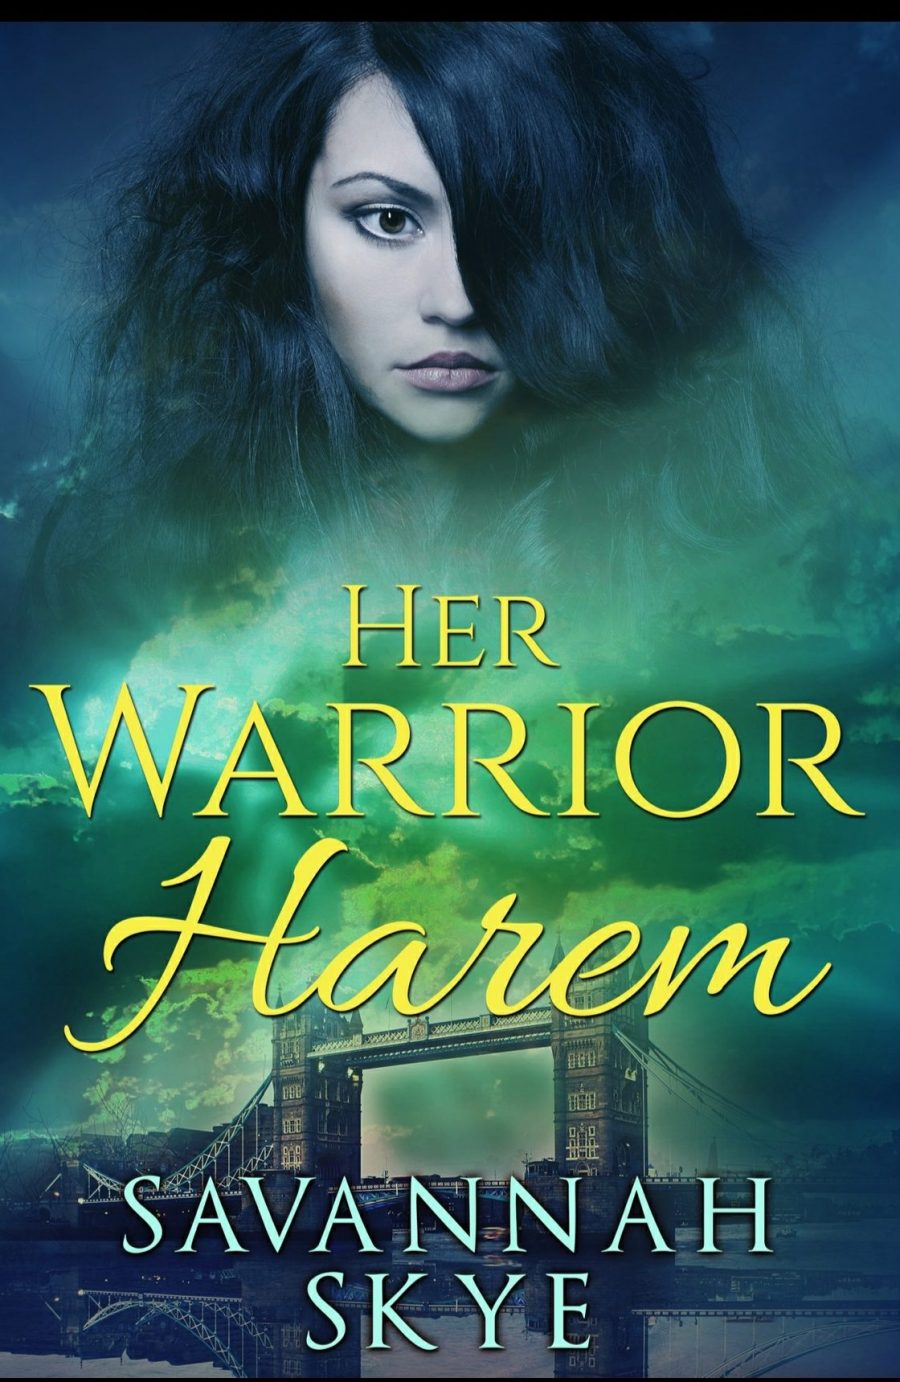 Her Warrior Harem by Savannah Skye – A Book Review